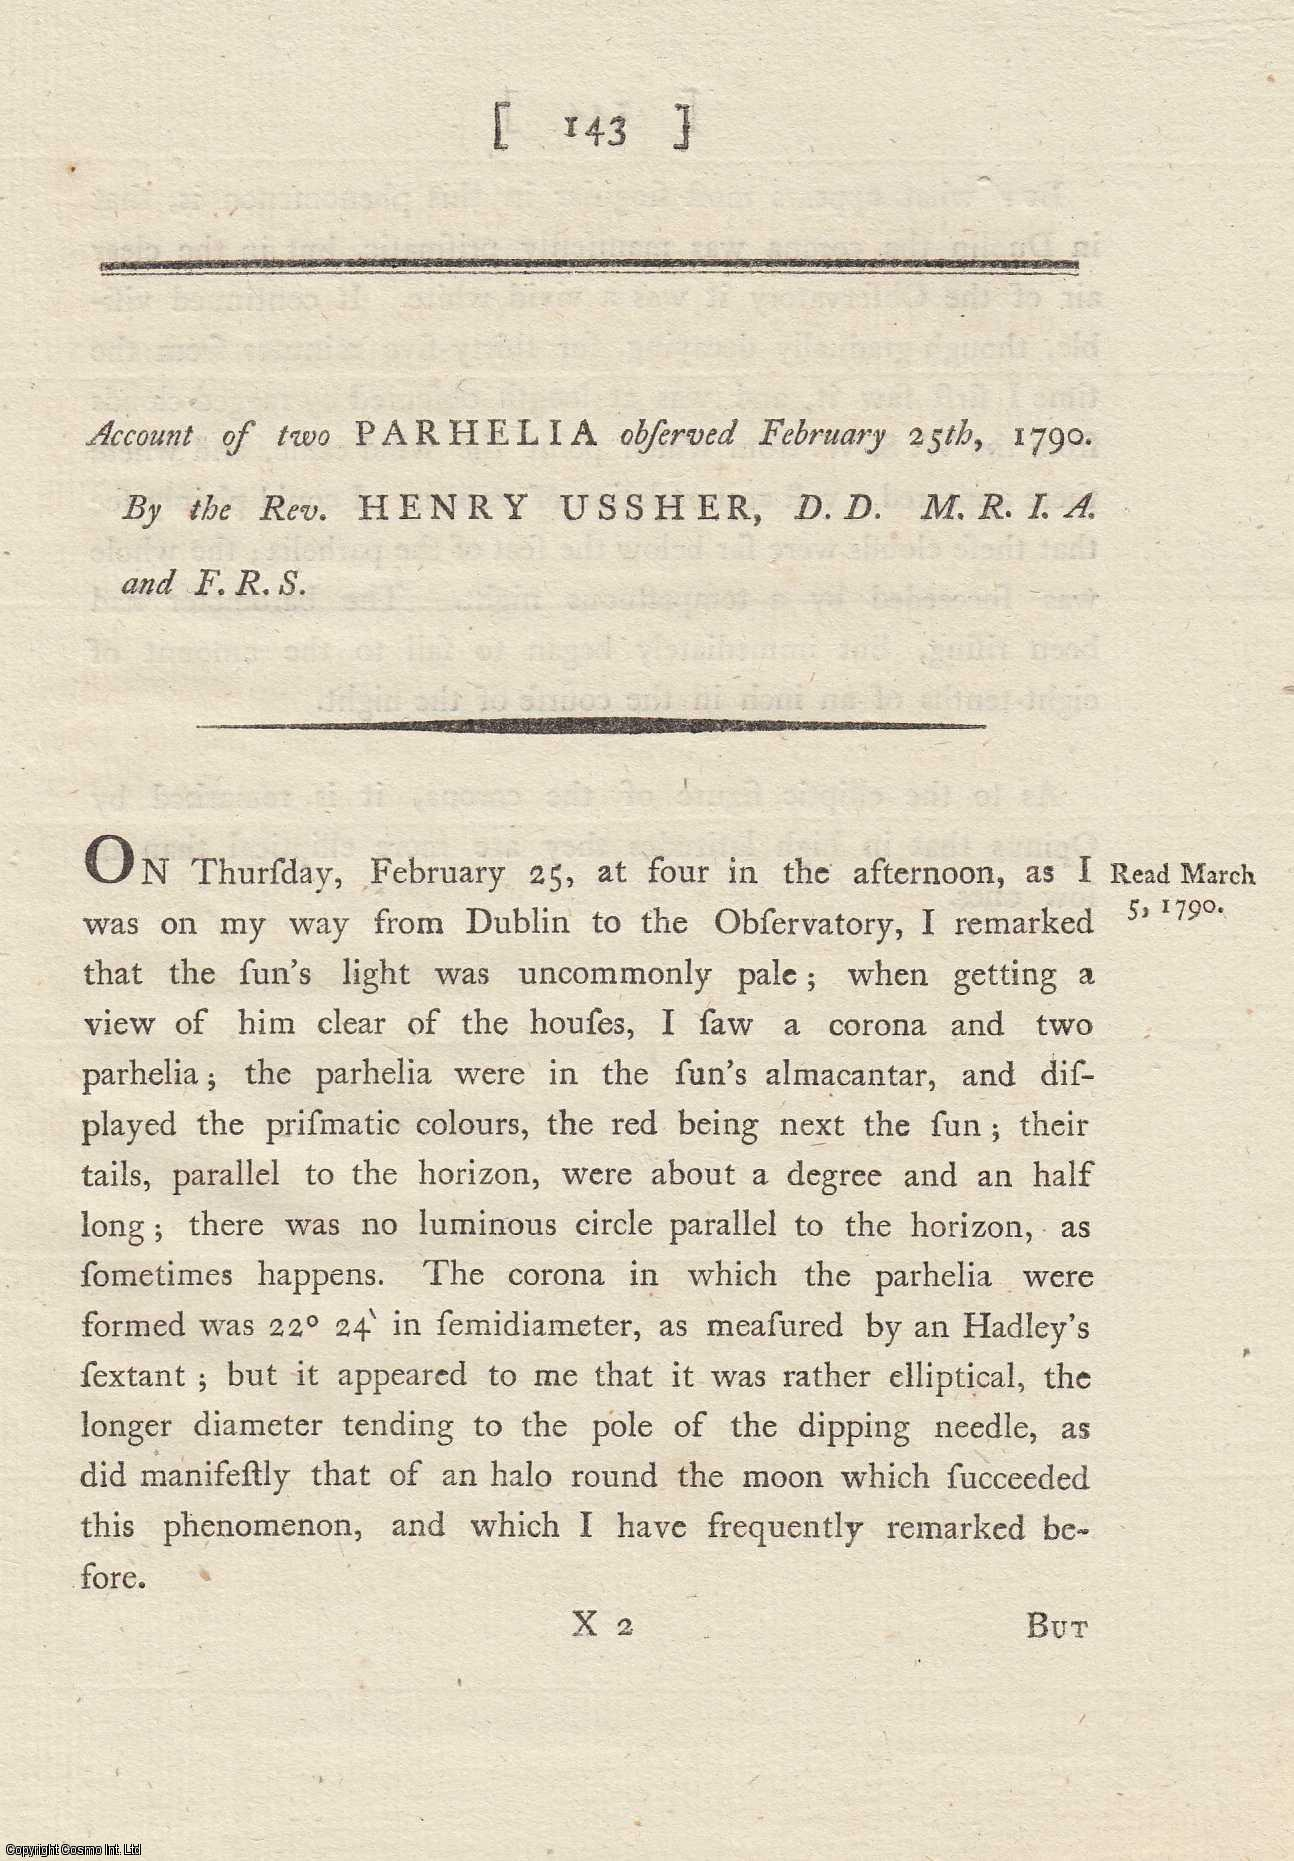 Account of two Parhelia observed February 25th, 1790.  From Transactions of the Royal Irish Academy., Ussher, Rev. Henry.